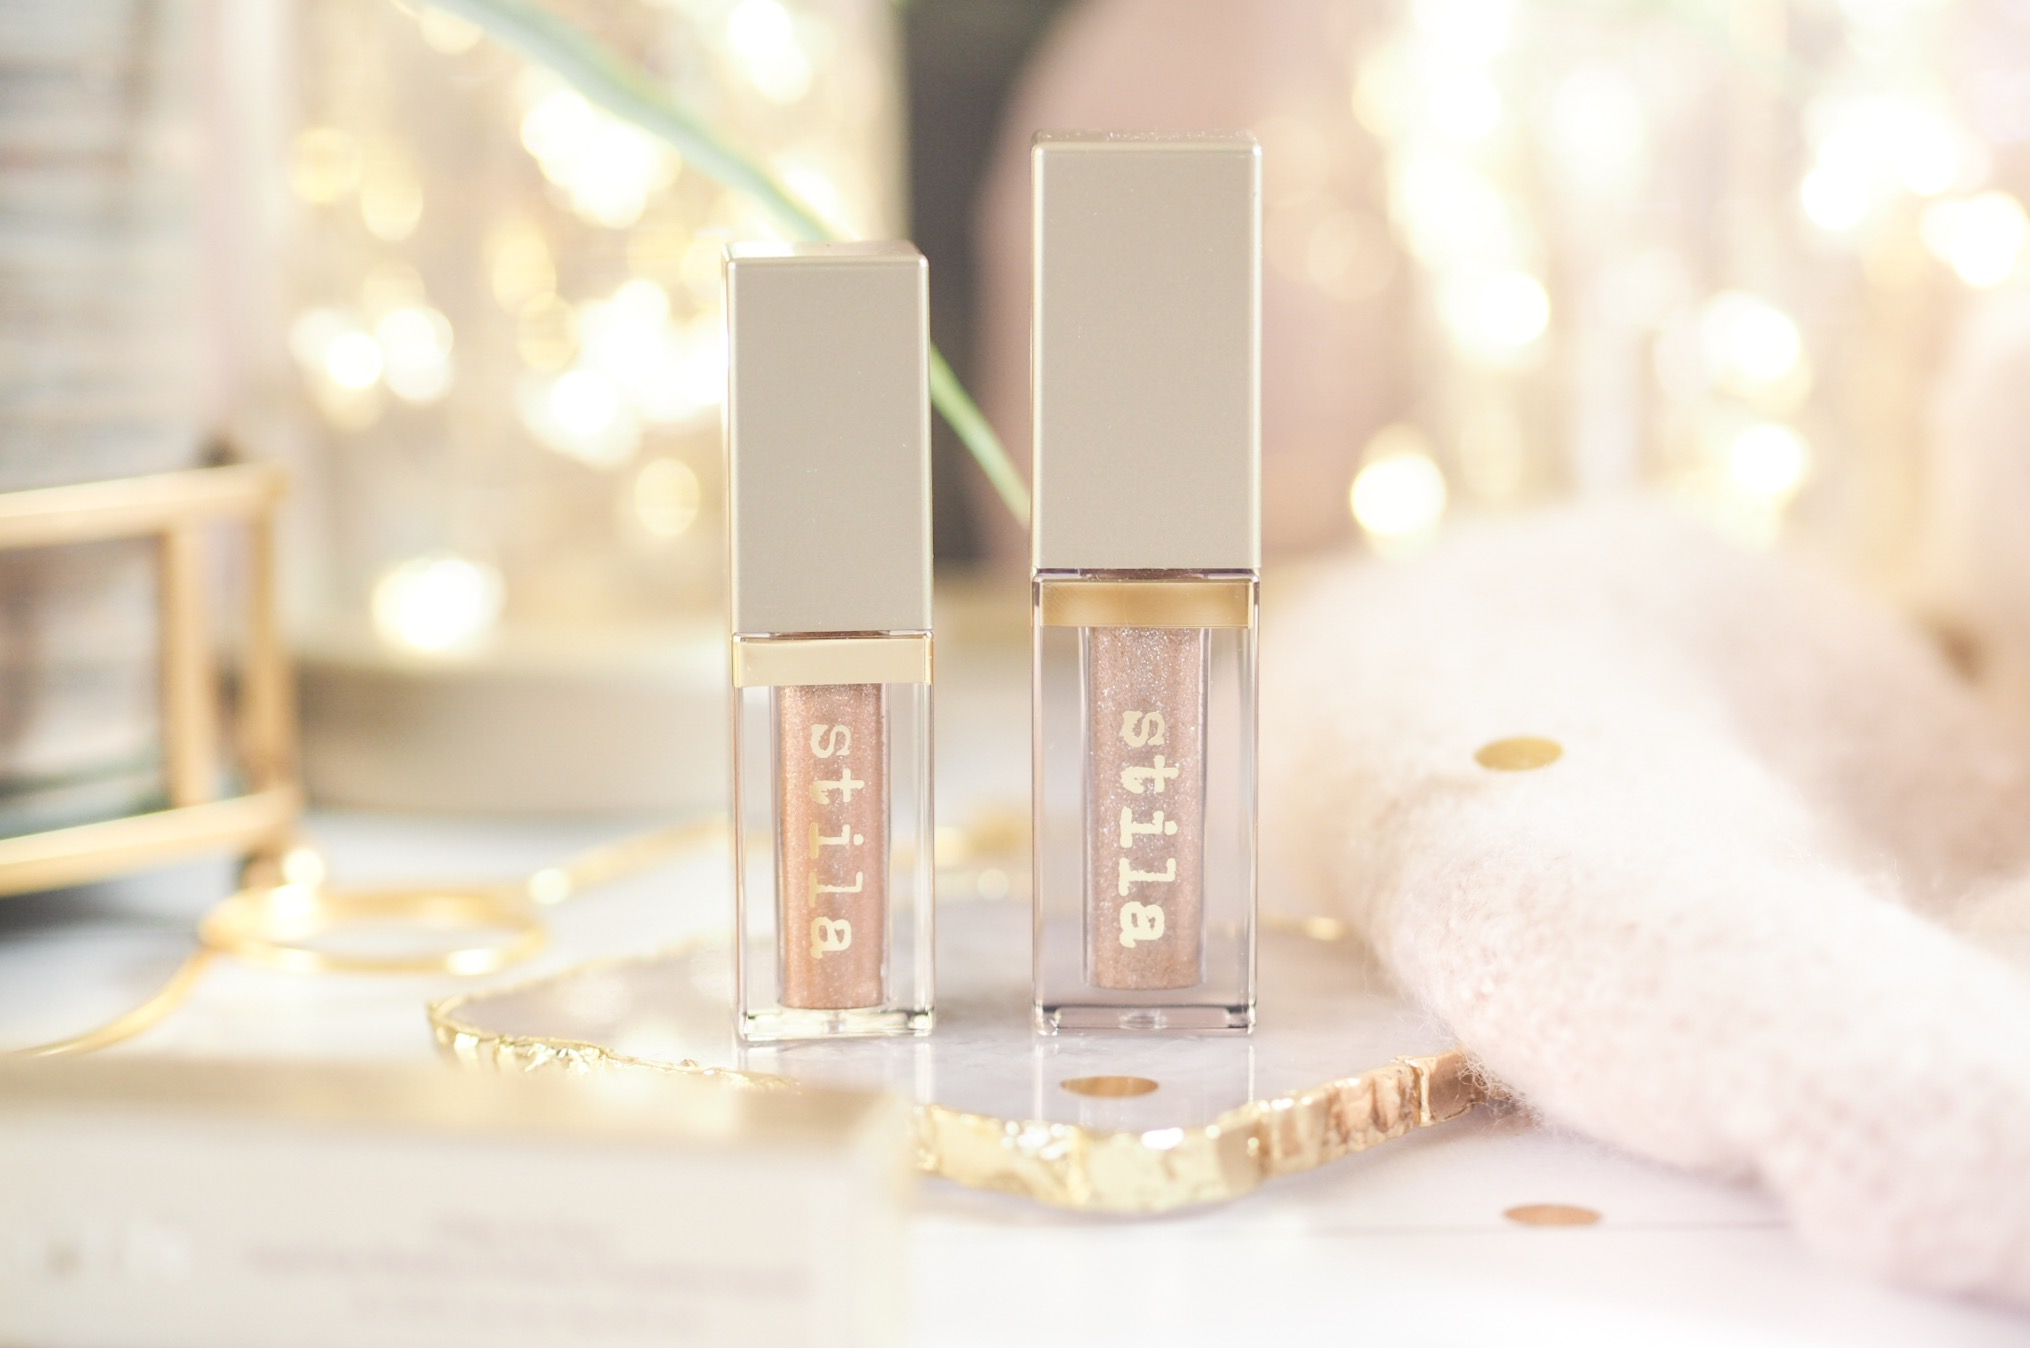 Stila Glitter & Glow Liquid Eye Shadows Review